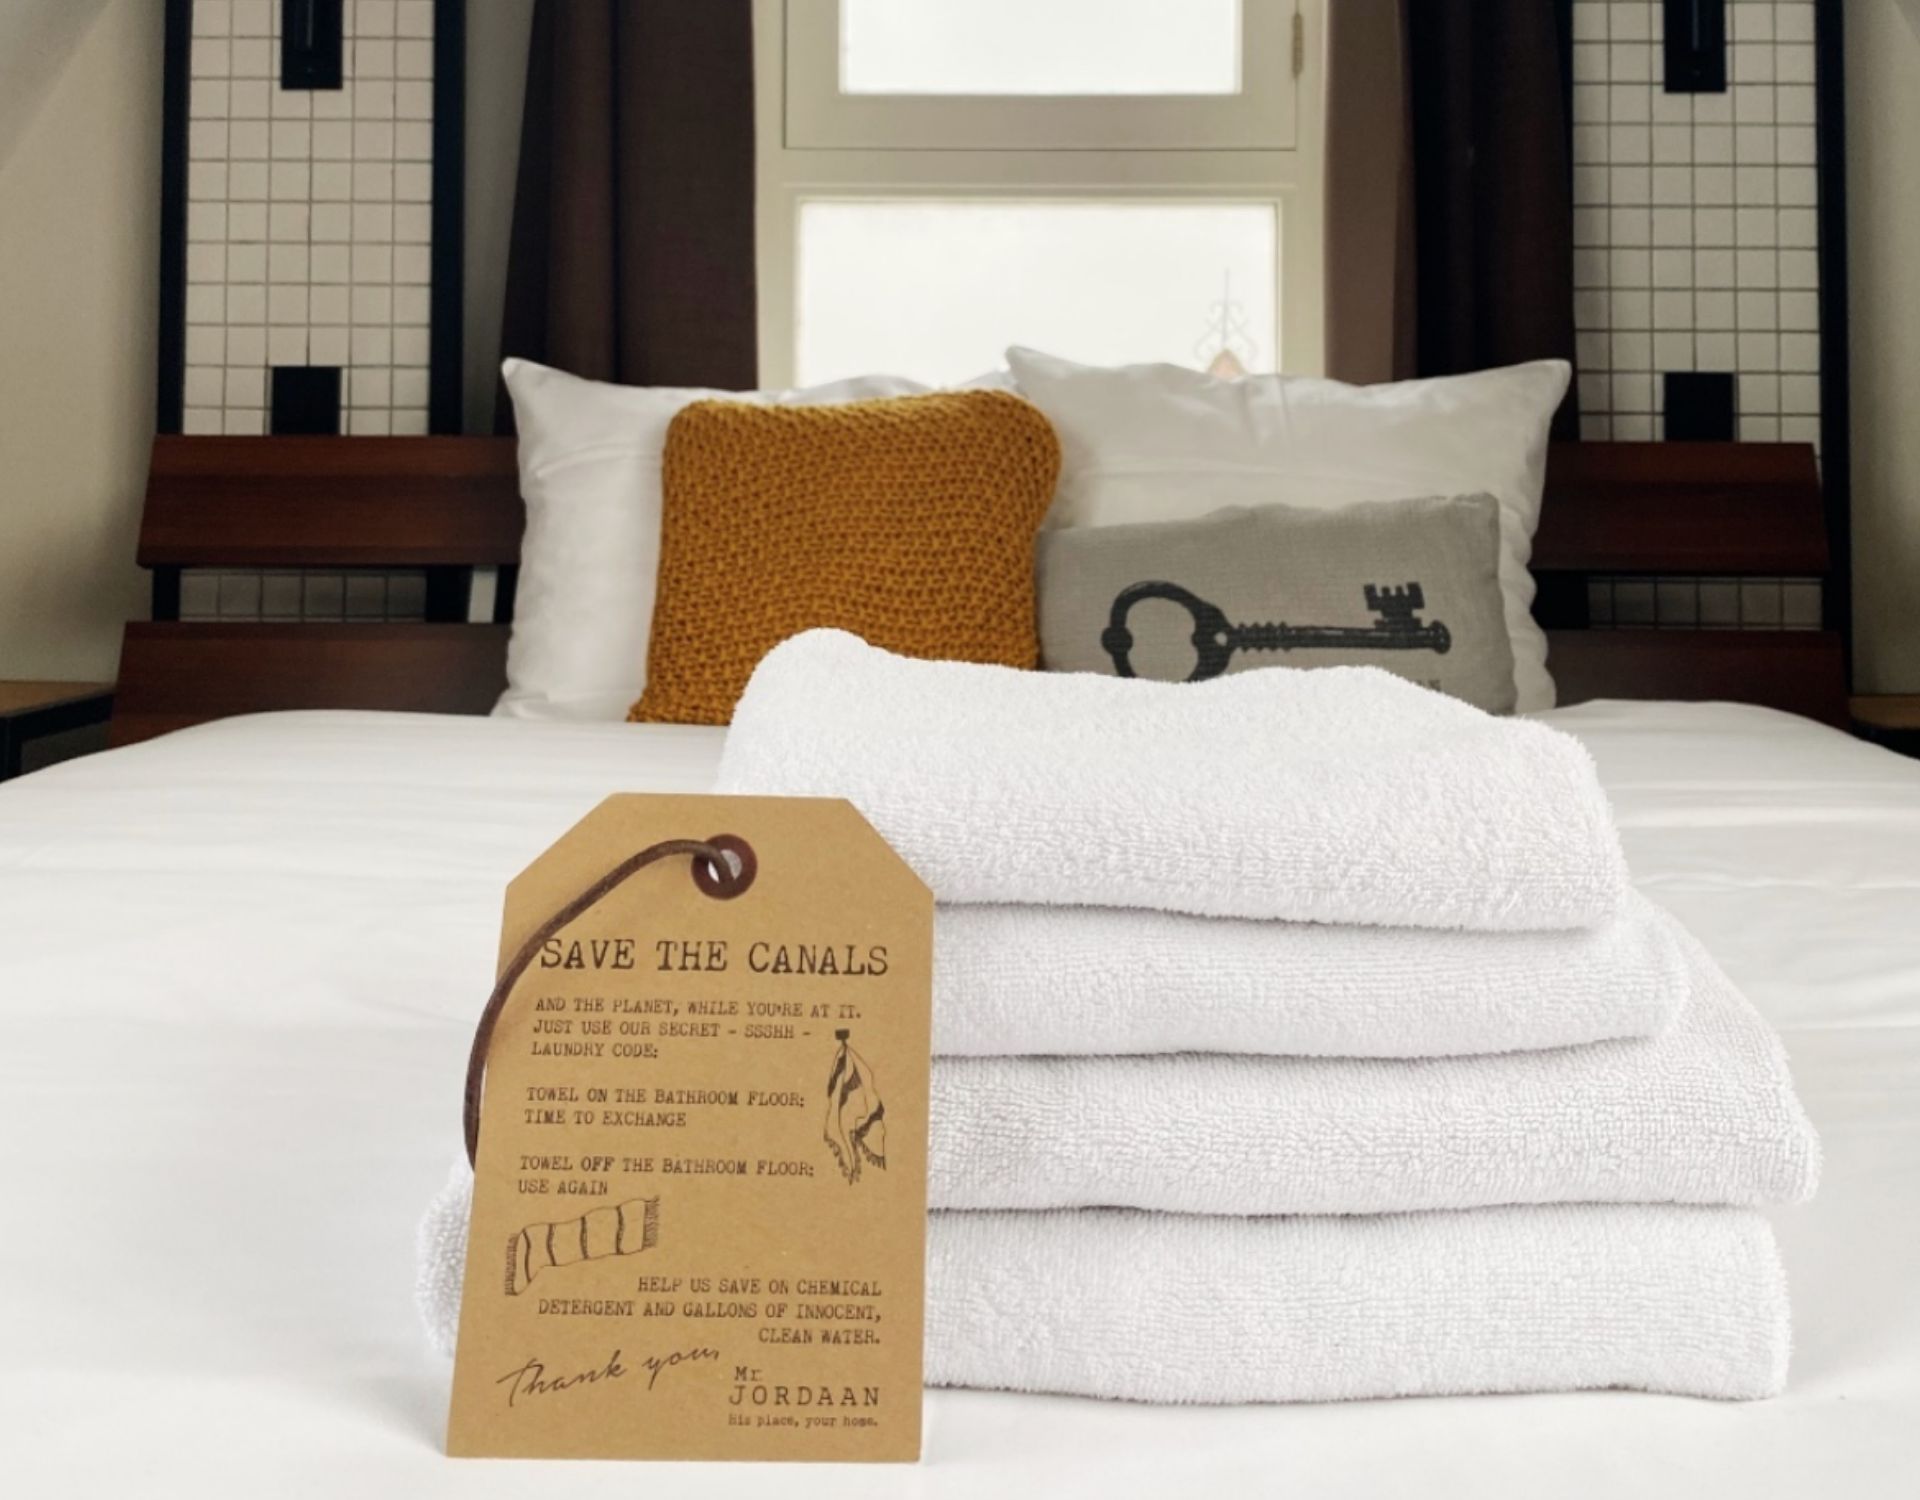 A canal sign on a stack of white towels on a bed with cushions in mr jordaan hotel amsterdam